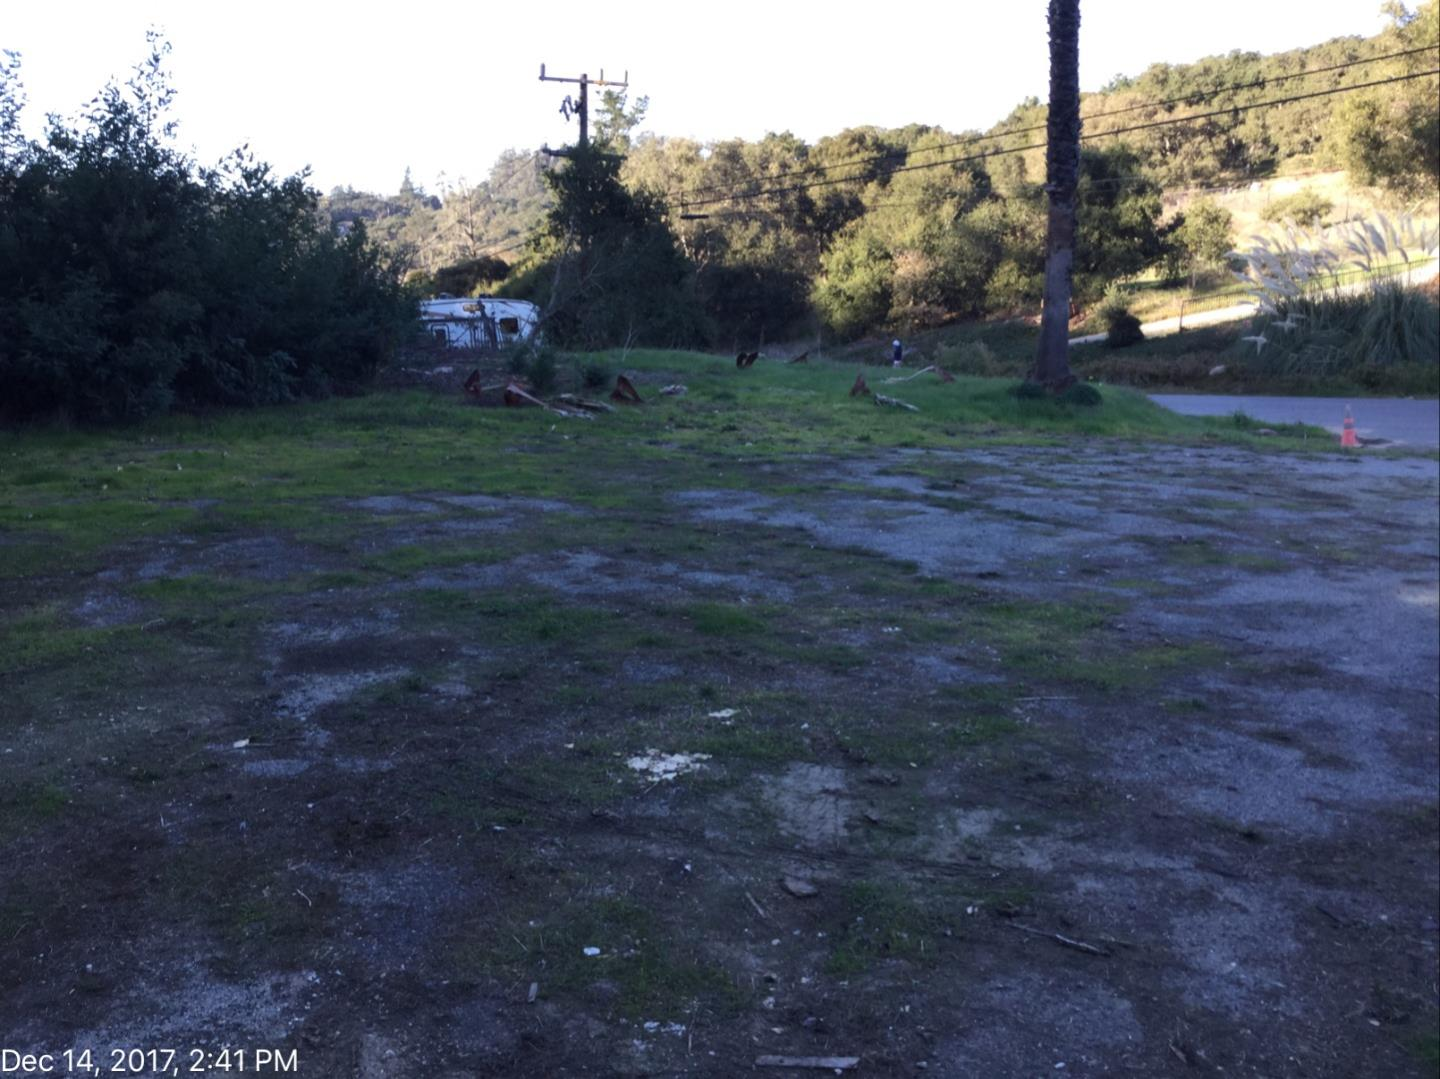 19230 Mallory Canyon Road Salinas, CA 93907 - MLS #: ML81687287